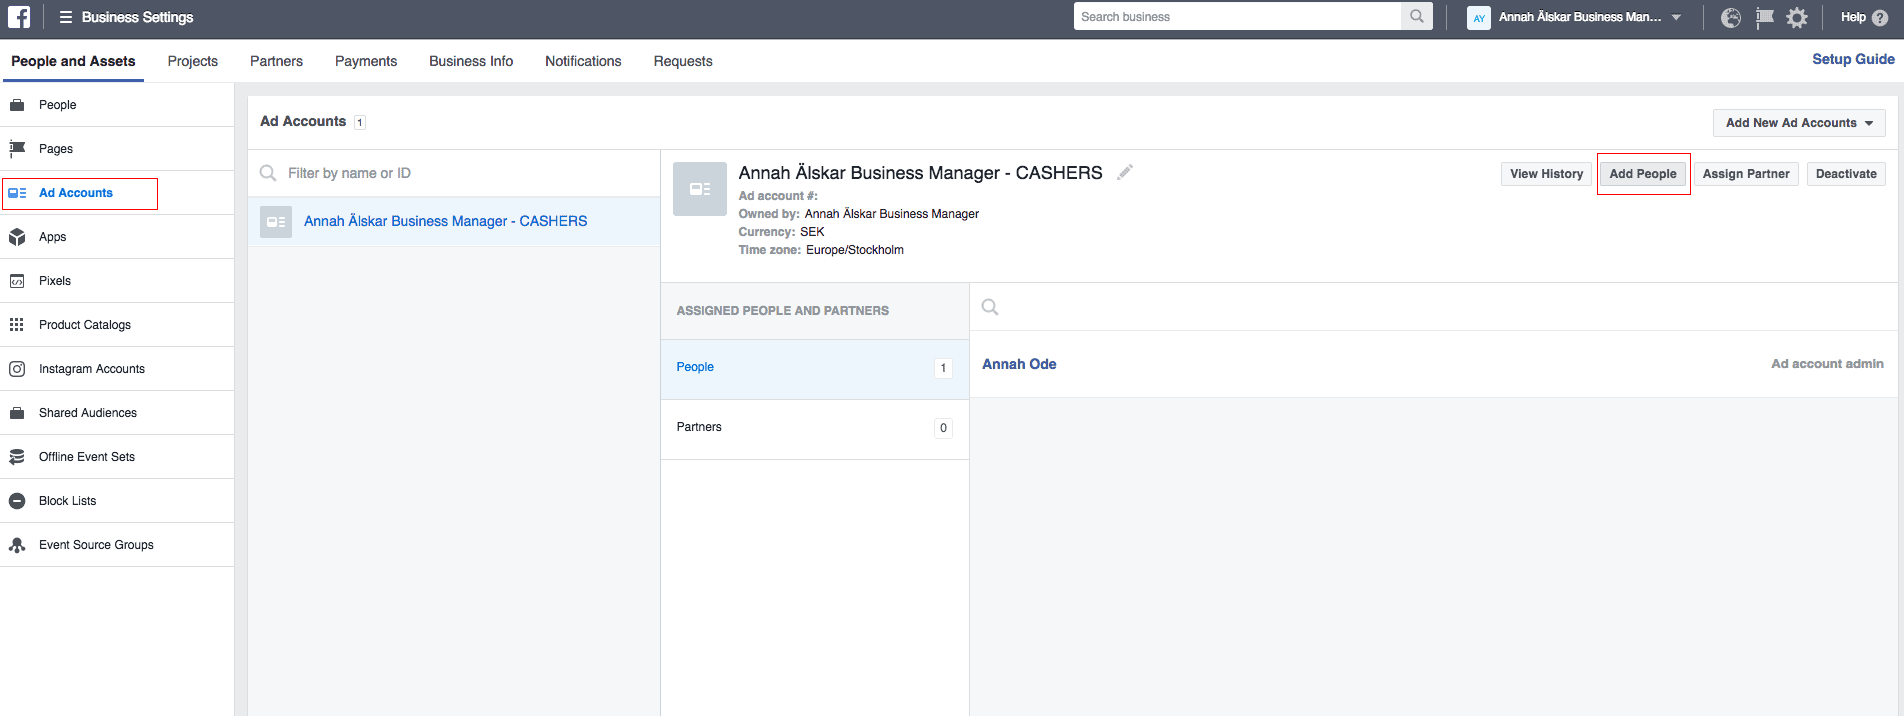 Add people on ad account facebook businss manager